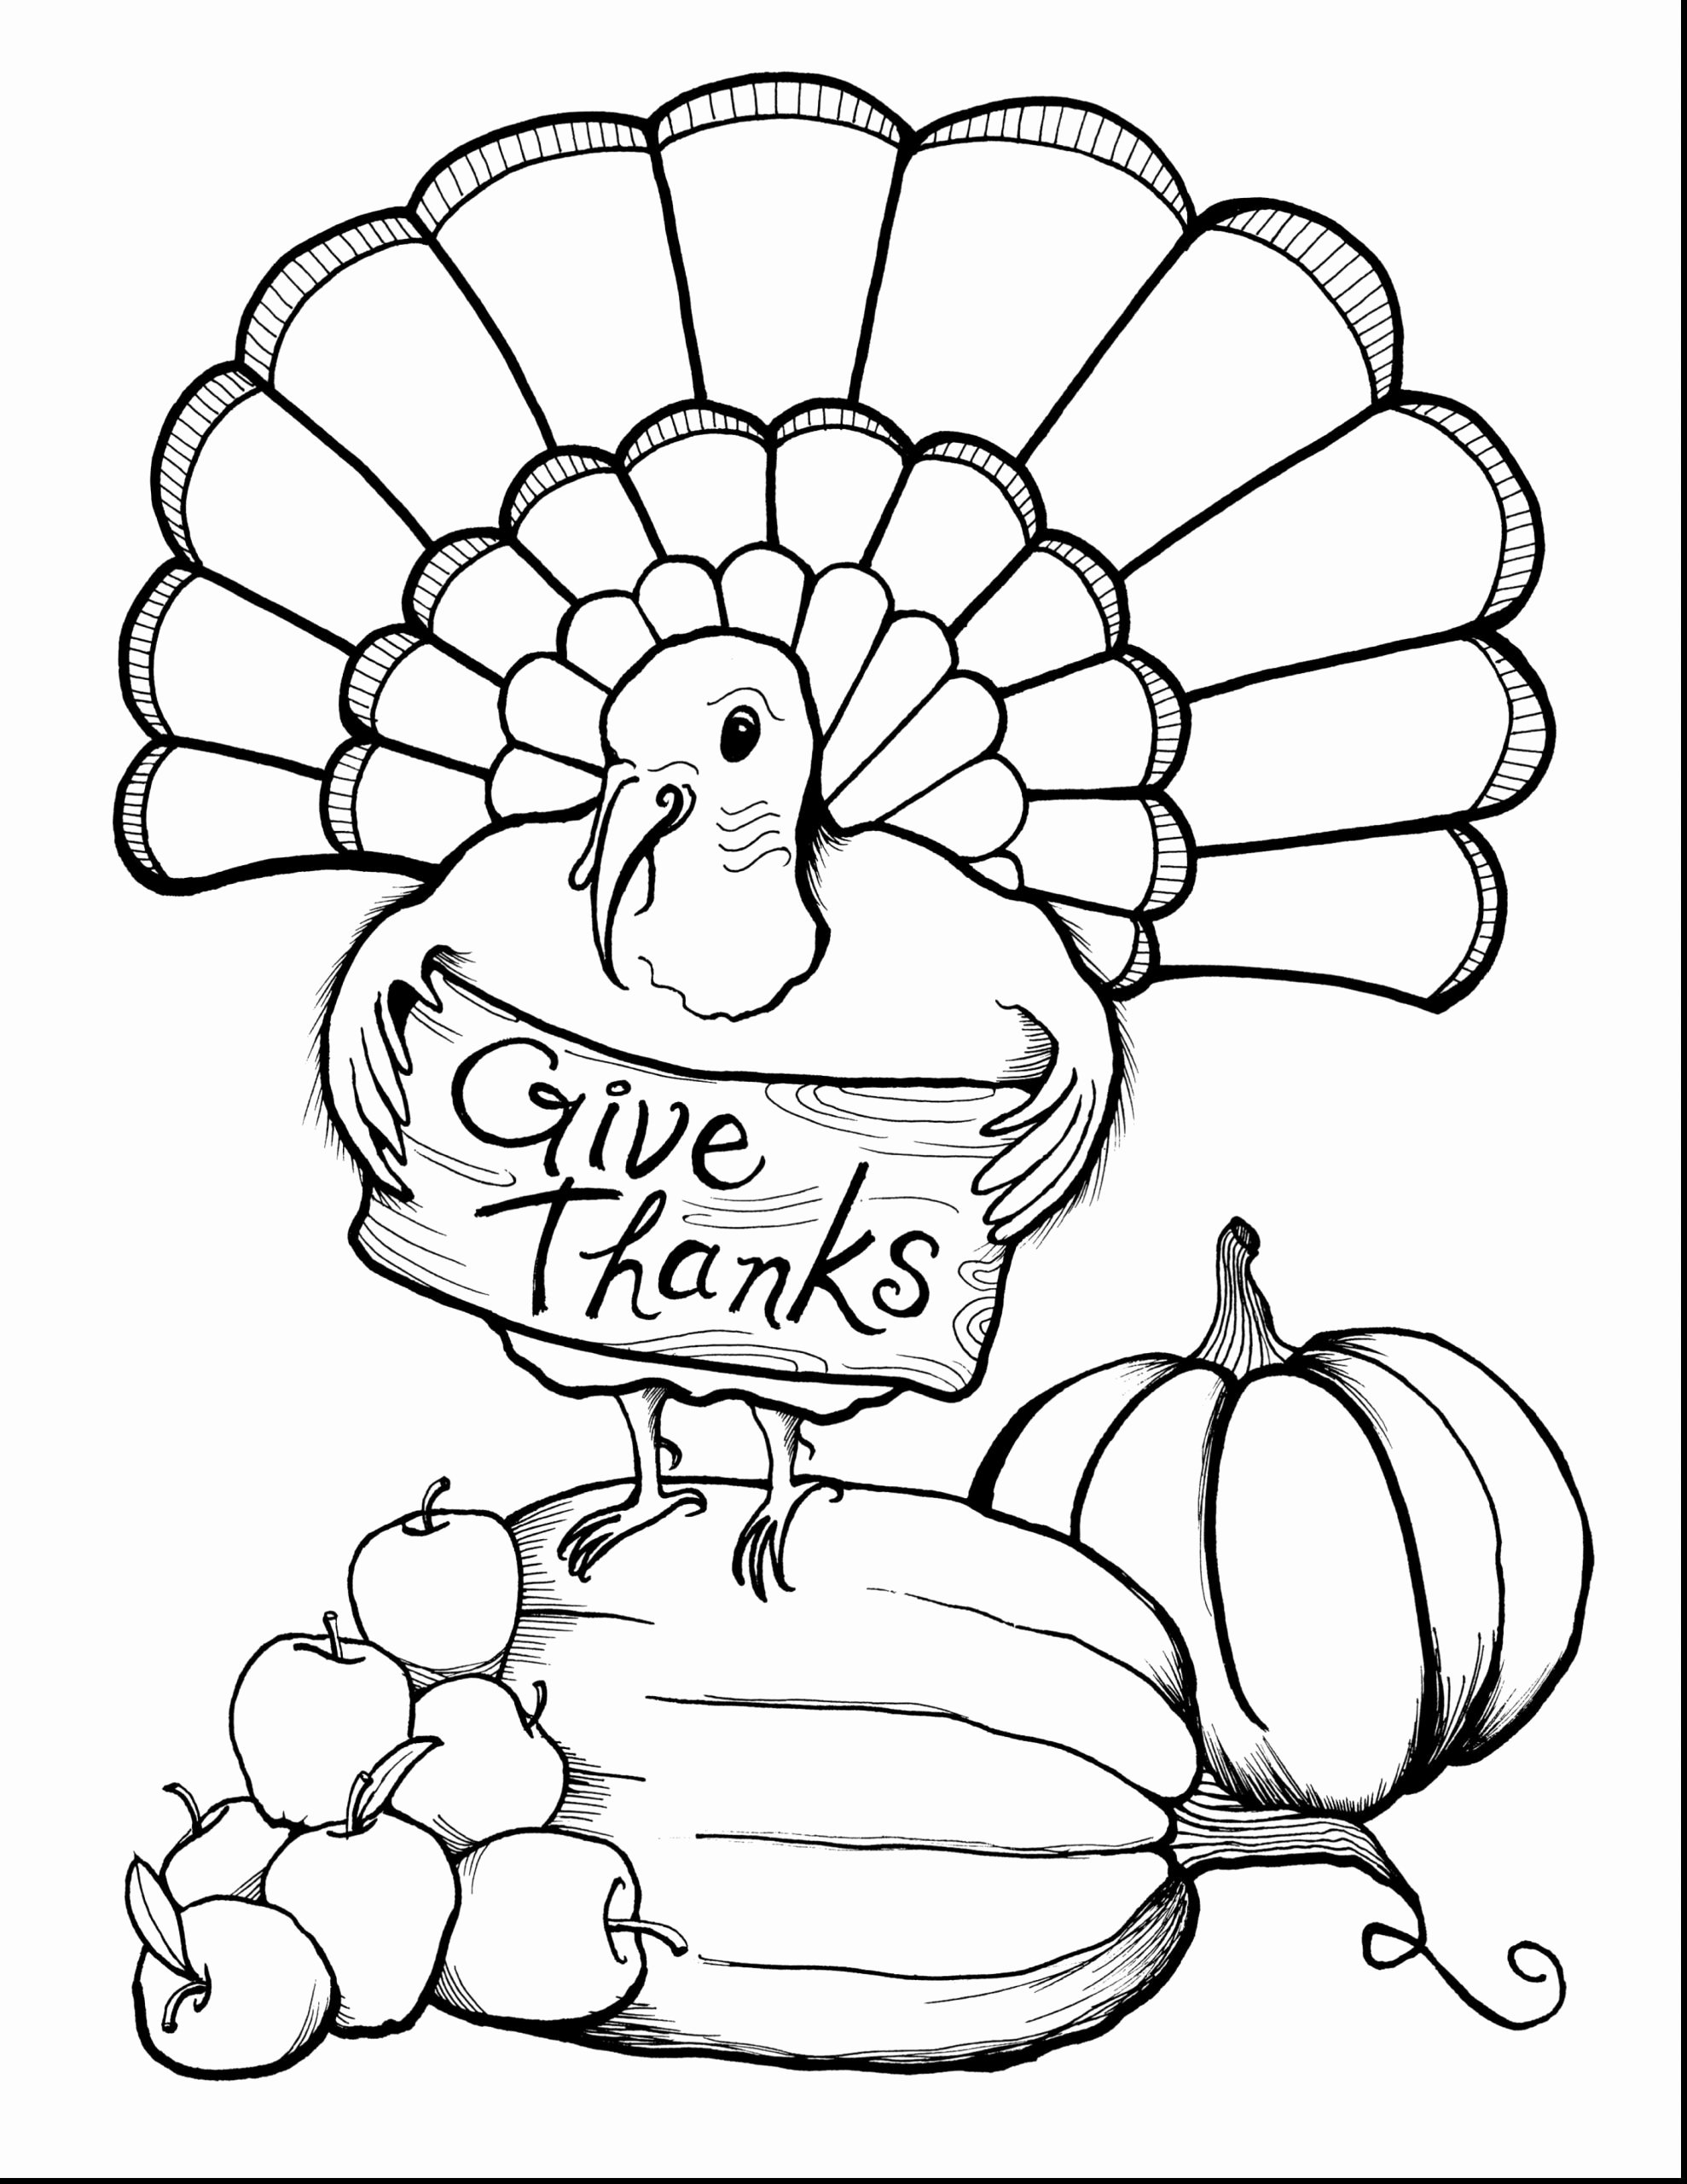 Thankful Worksheets for Preschoolers New Math Worksheet Best Coloringving Printable Kids Free